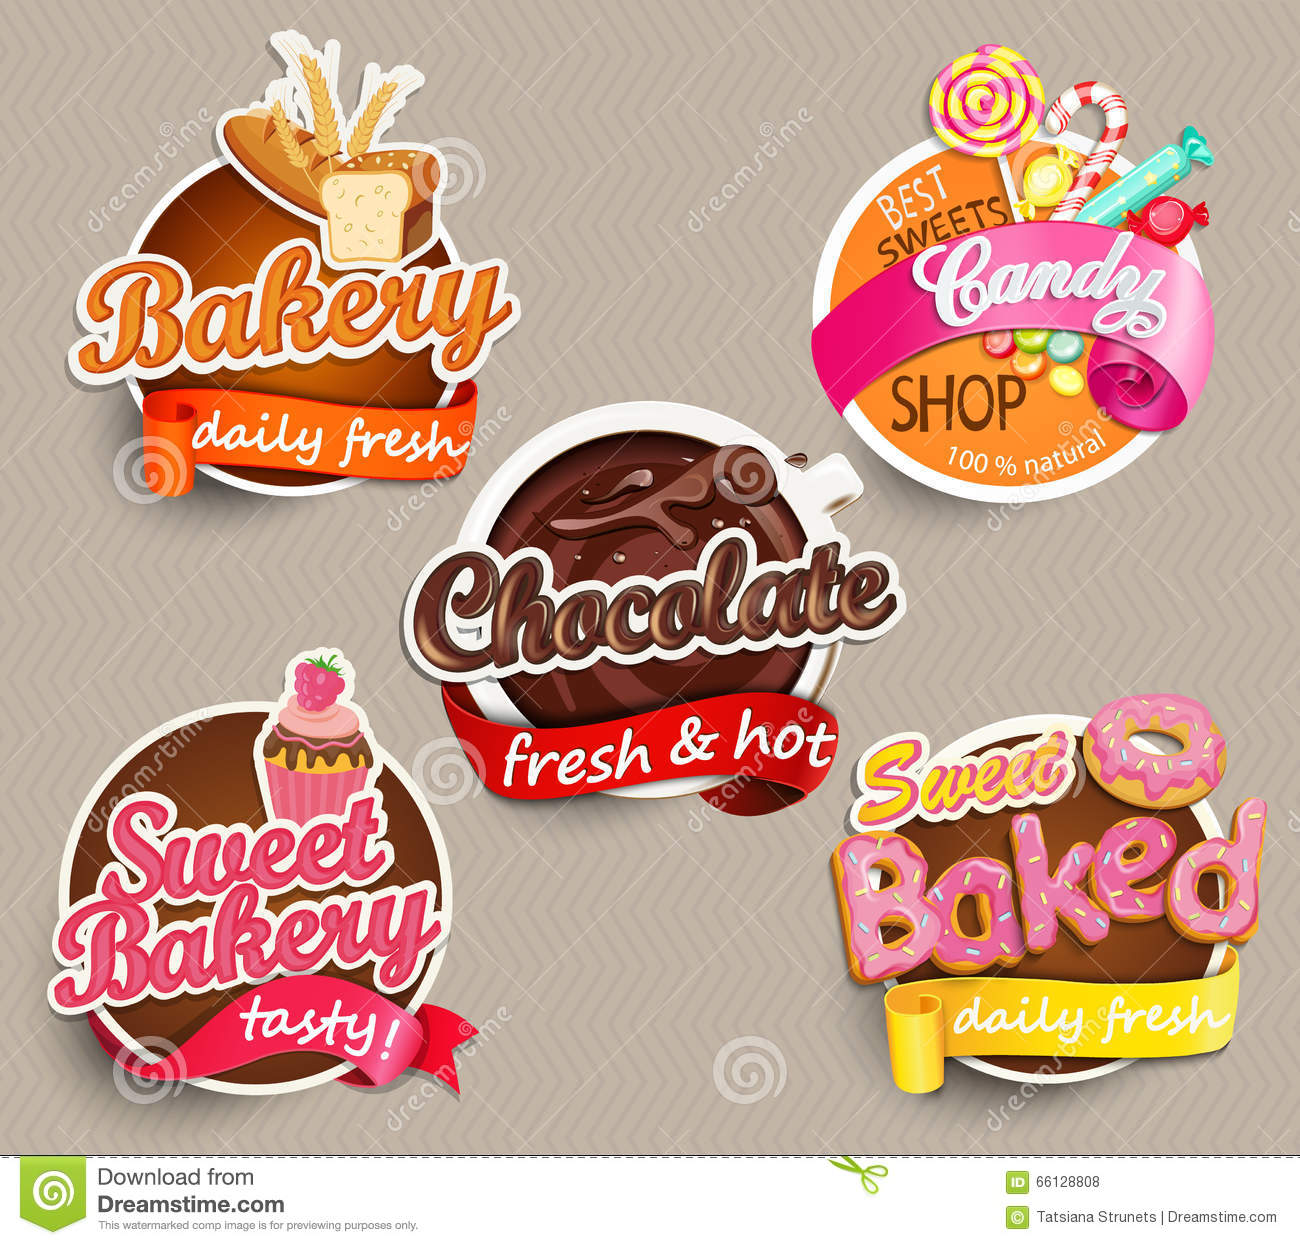 Food label or sticker bakery chocolate sweet baked candysweet bakery design template vector illustration